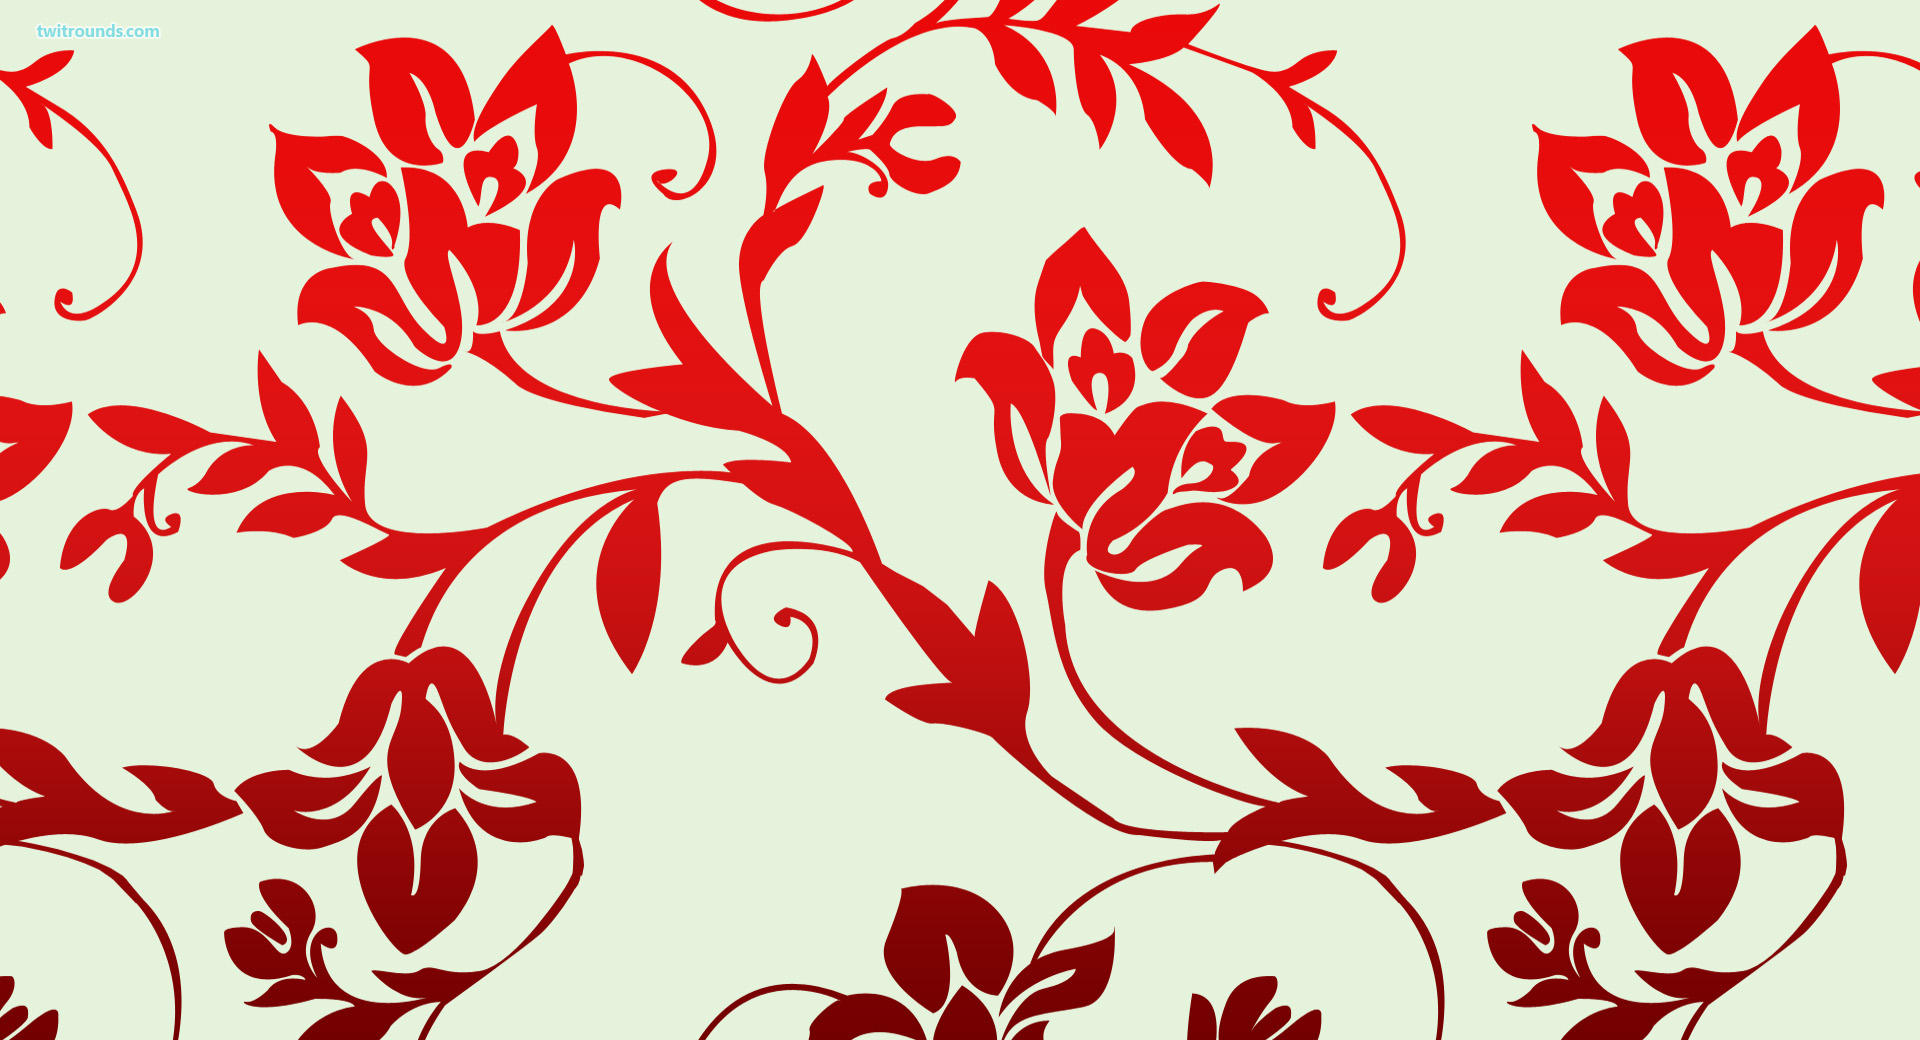 Red floral tumblr backgrounds